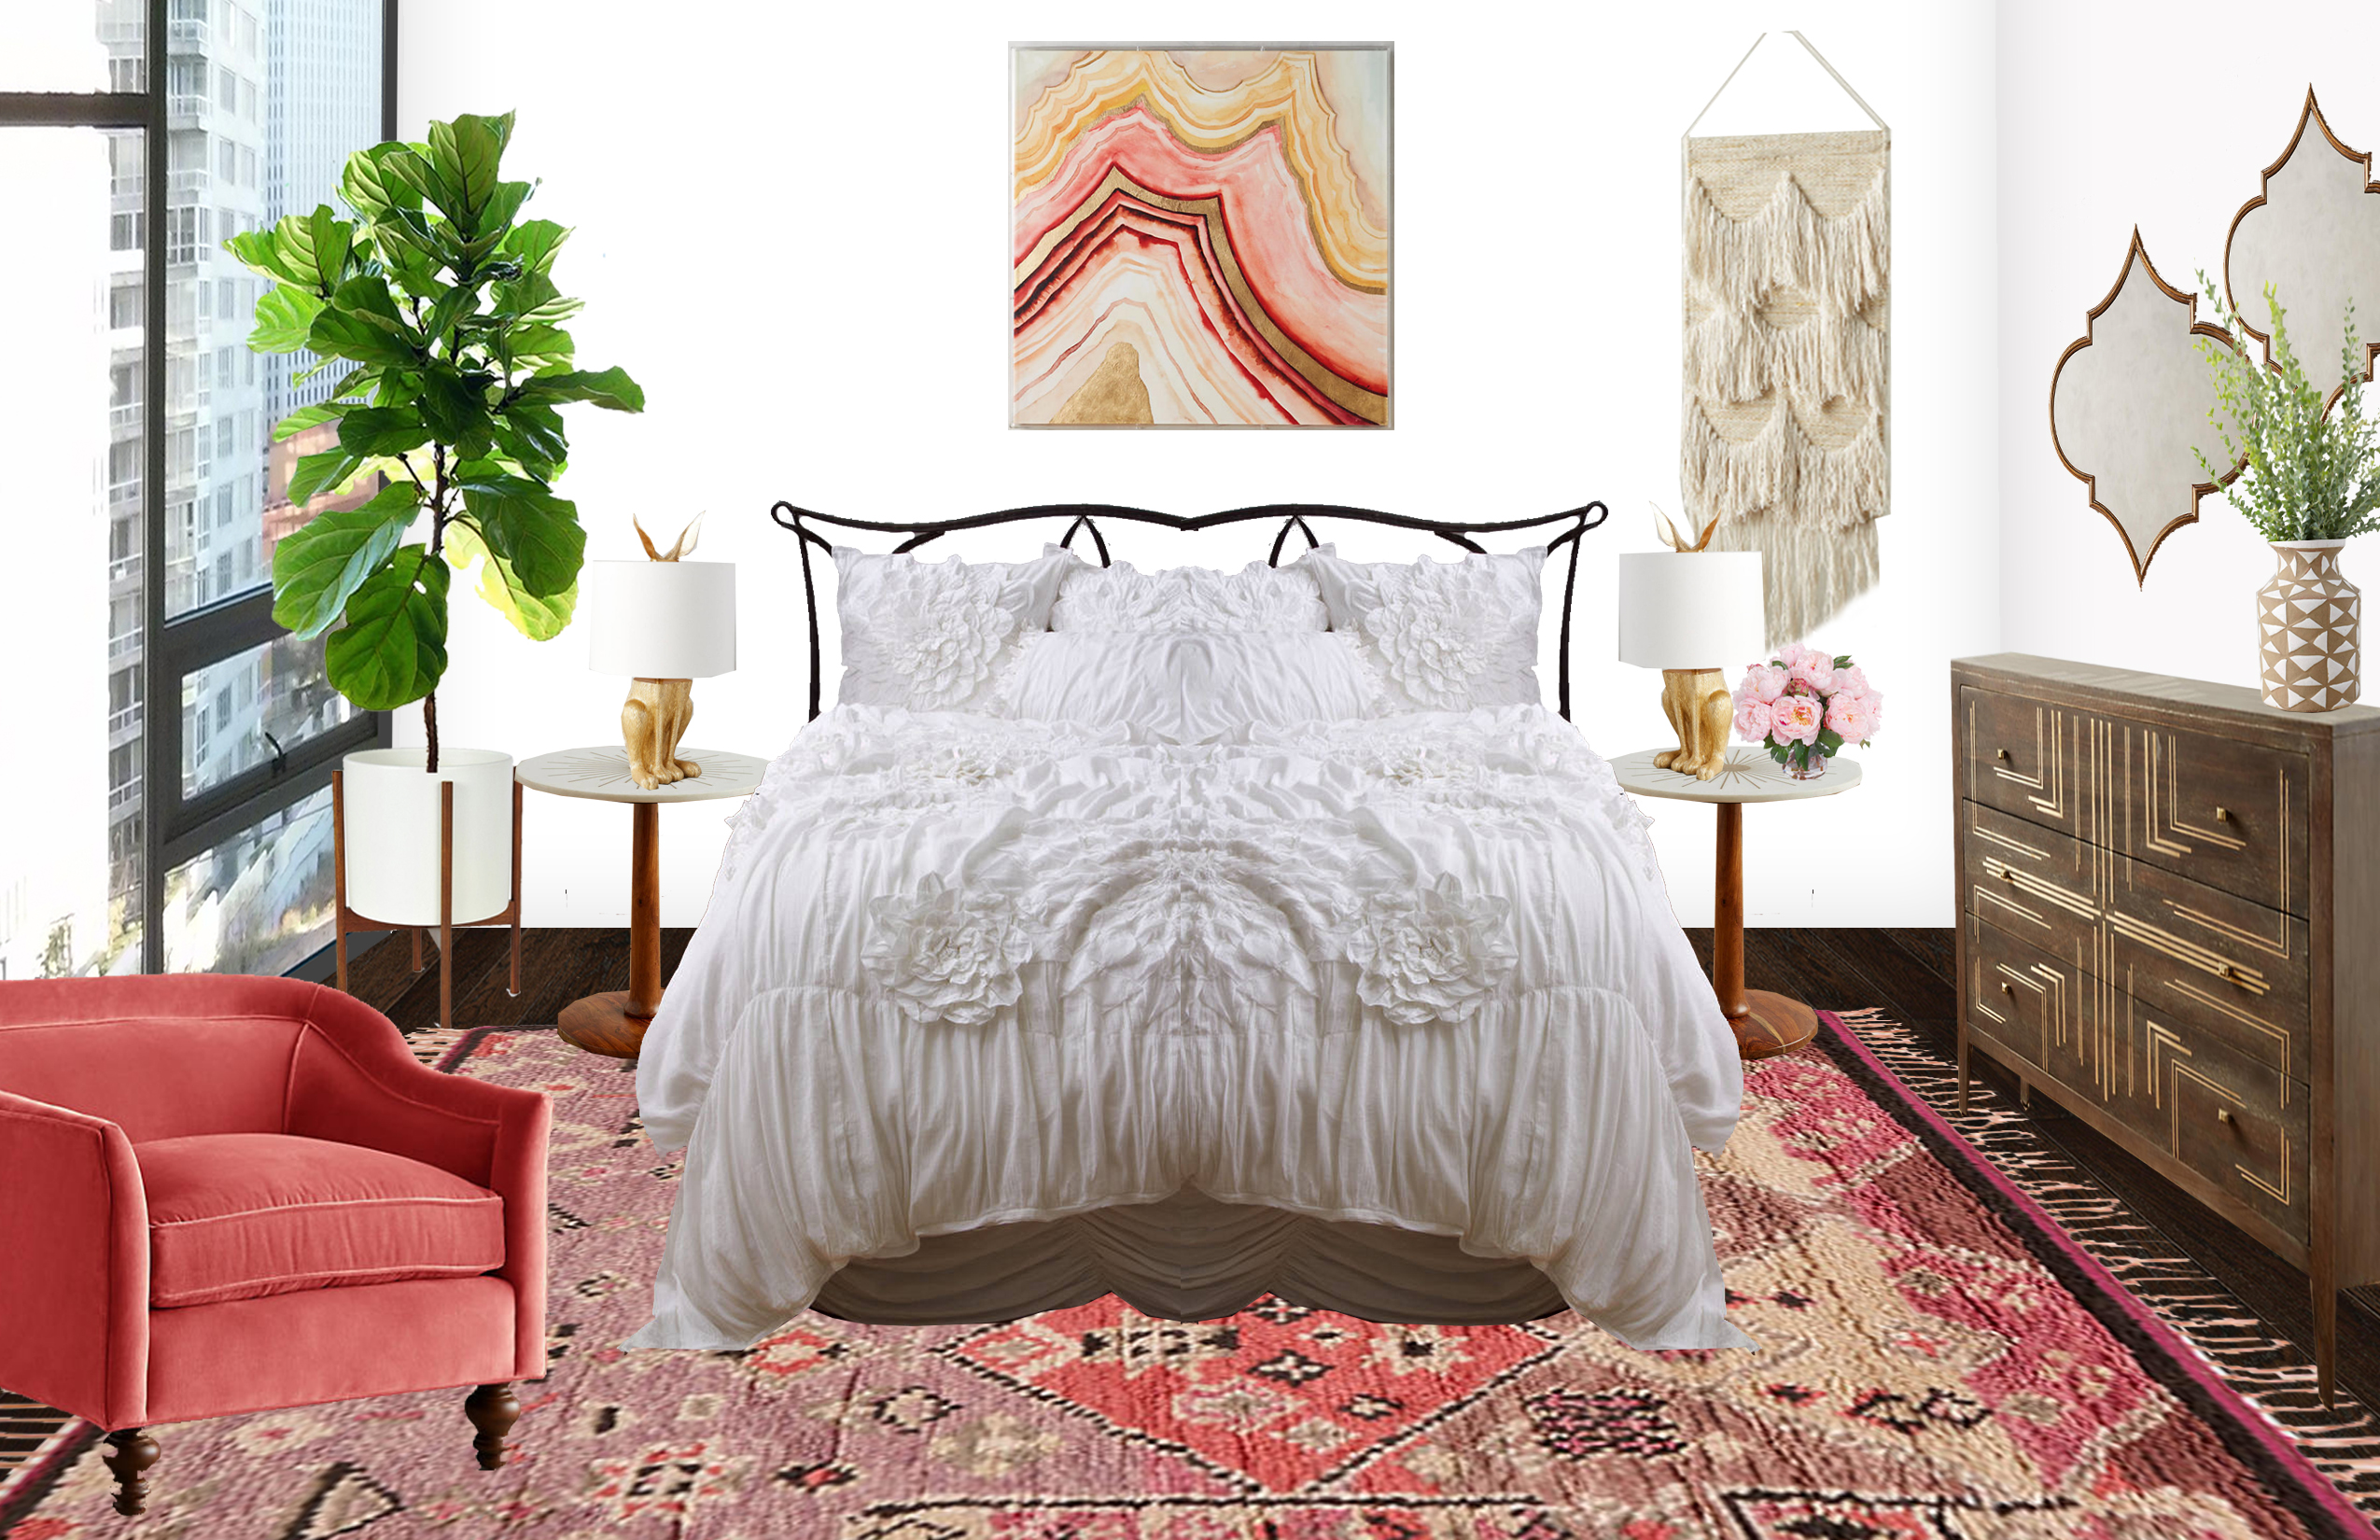 100 Anthropologie Room Inspiration Home Decor Shopping Sites Anthropologie Style Clothing Kmhc